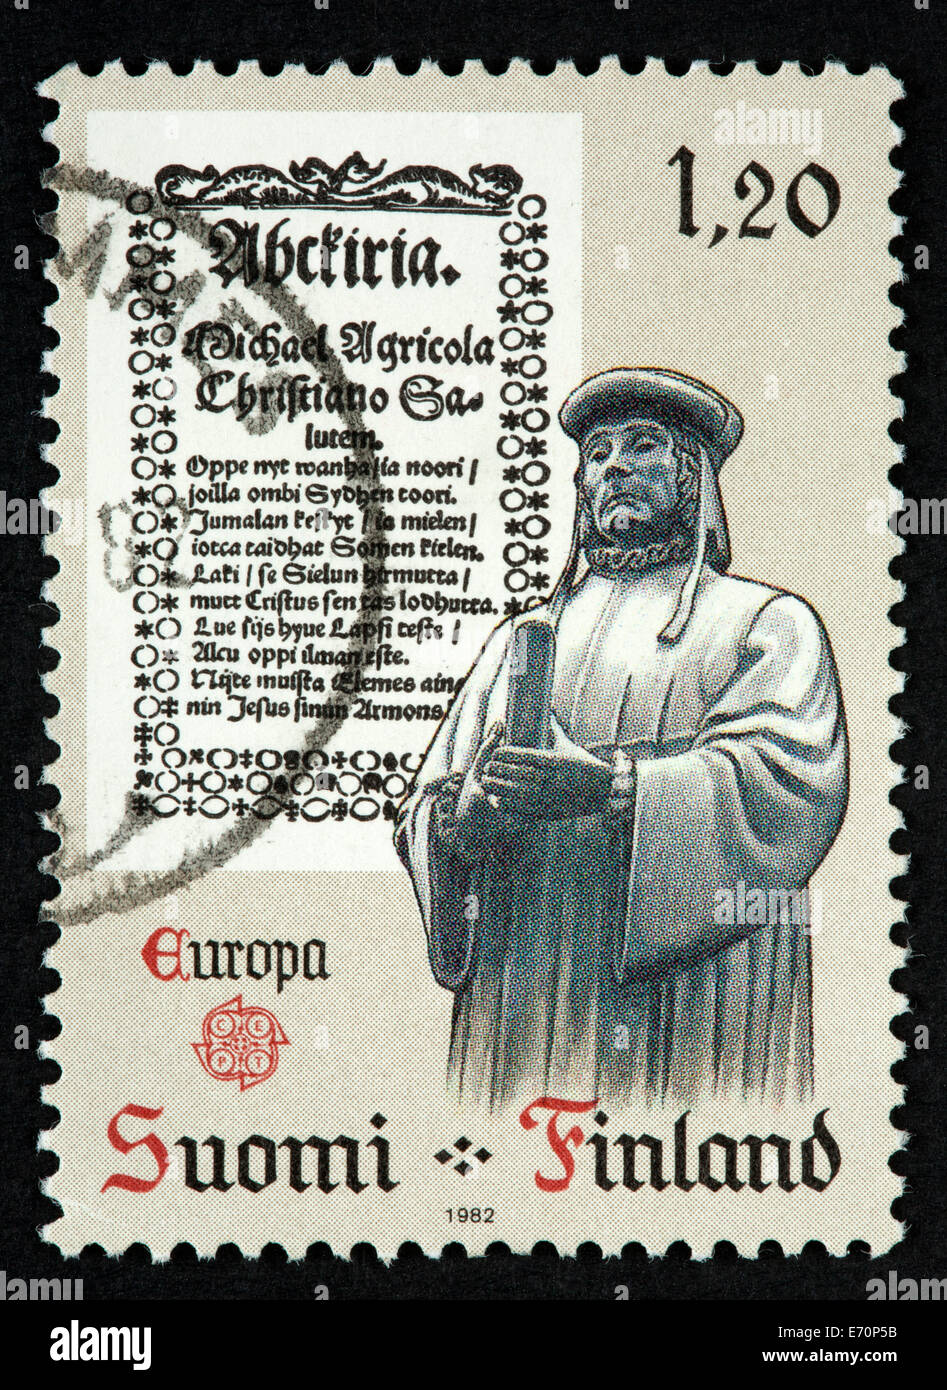 Postage Stamp Finland Stock Photos & Postage Stamp Finland Stock